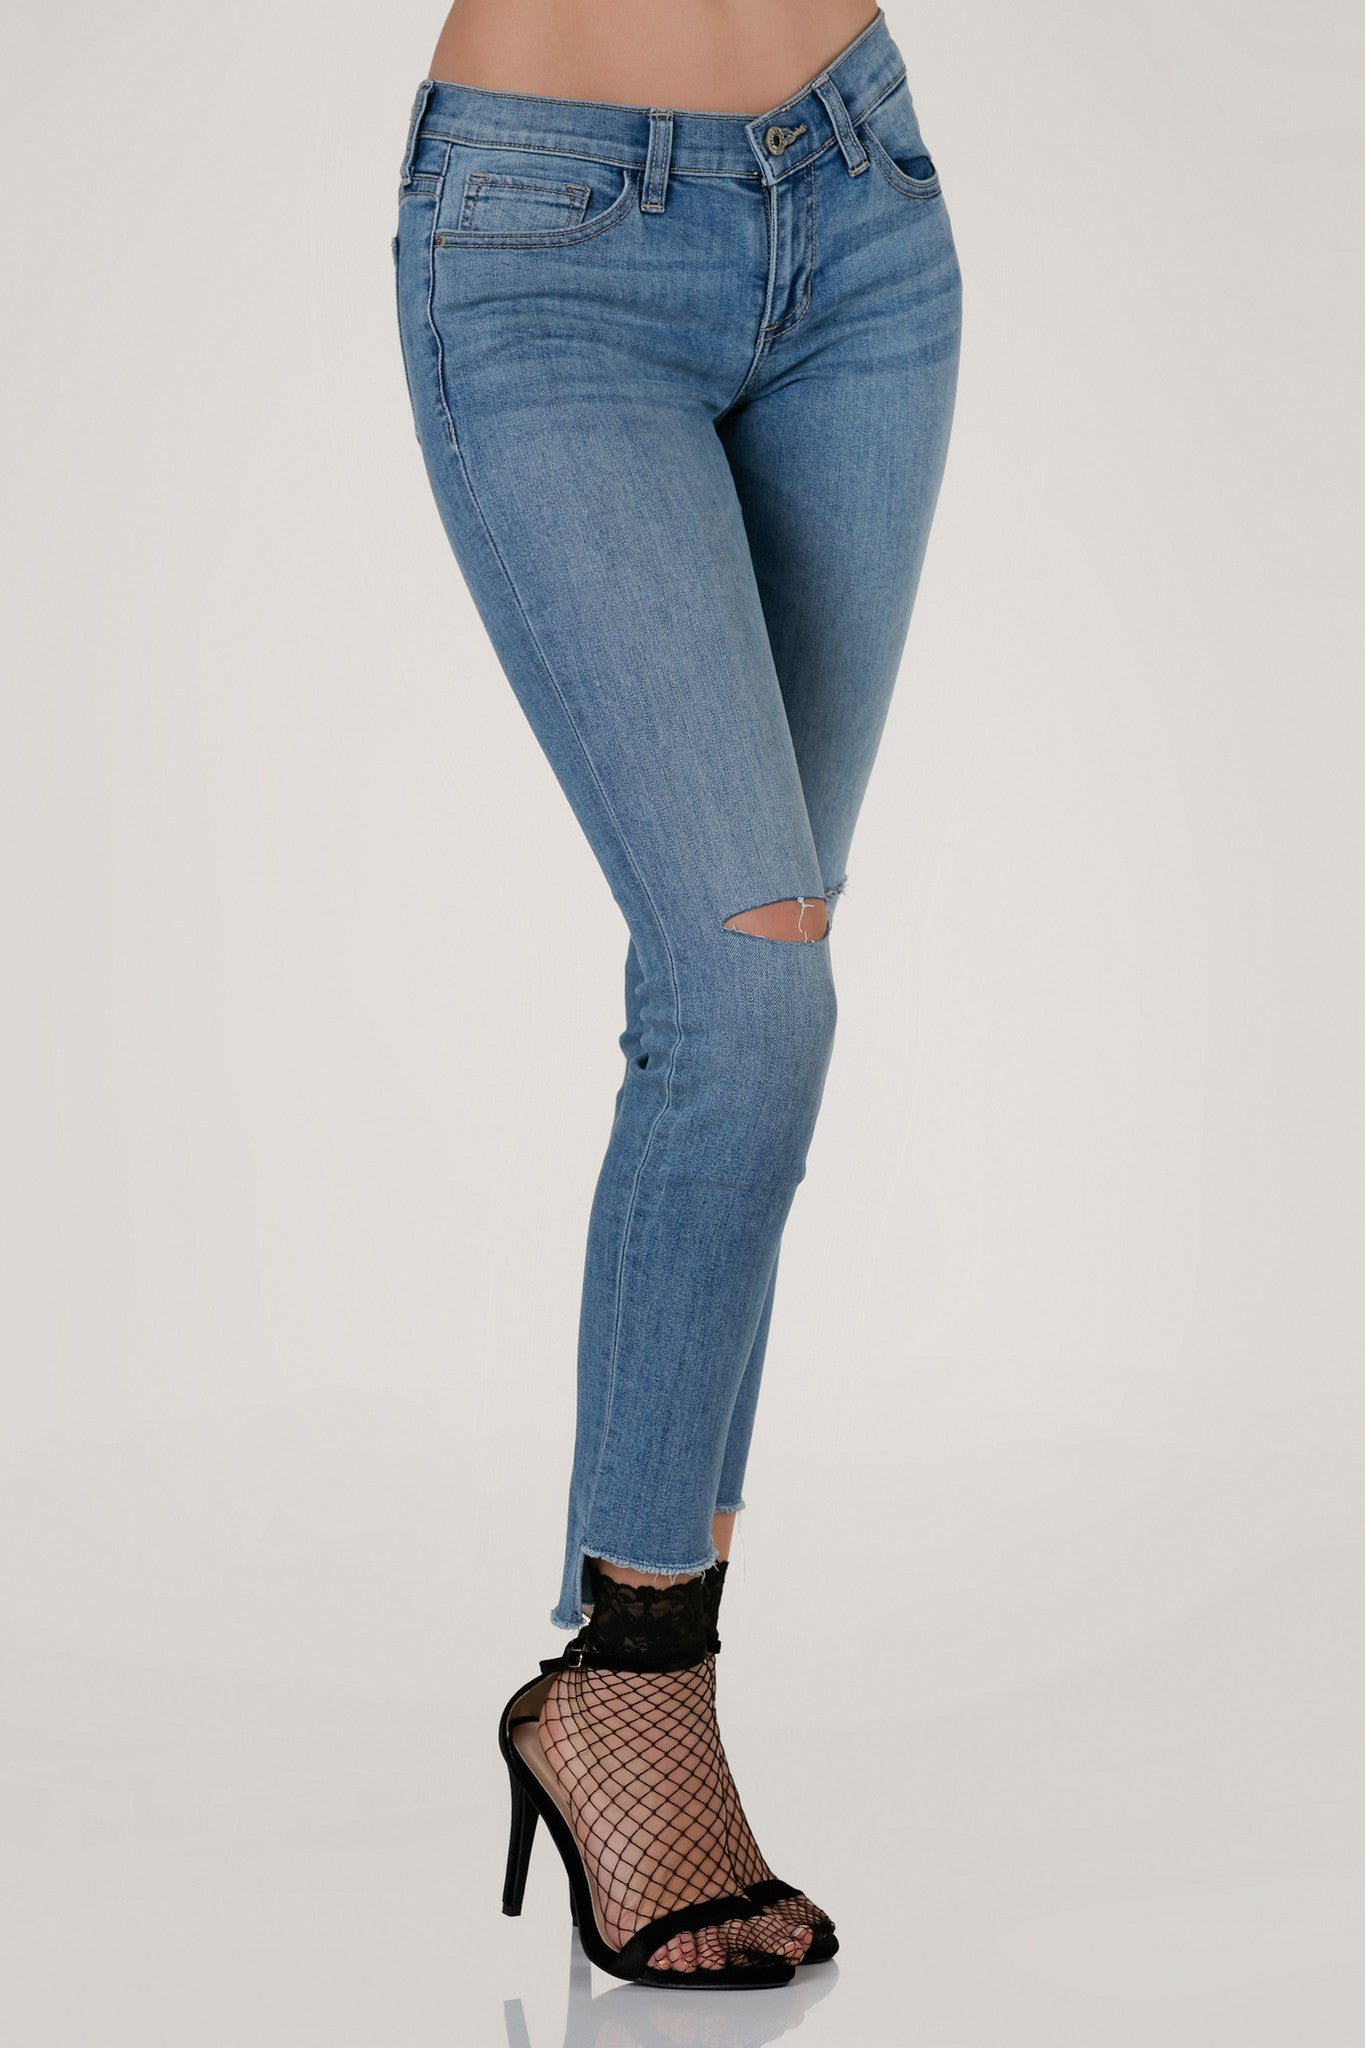 Classic 5 pocket skinny jeans with comfortable low rise waist and ripped knee detailing. Uneven raw hem with light vintage style wash.